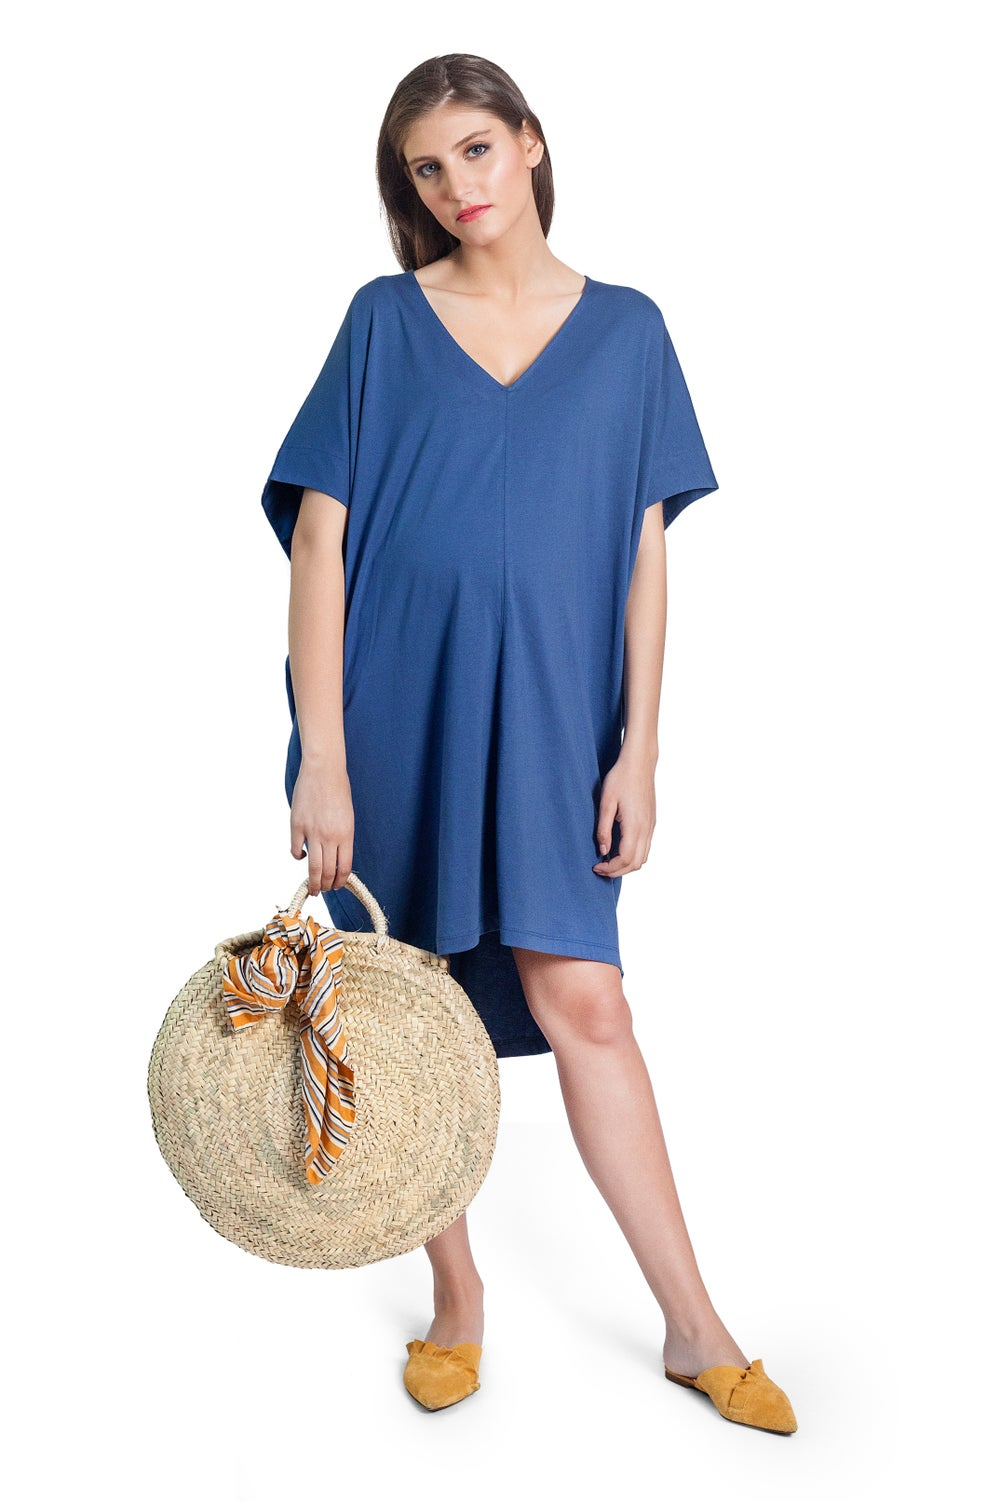 Image of BLISS TUNIC AZUL SALE CLP $18.000